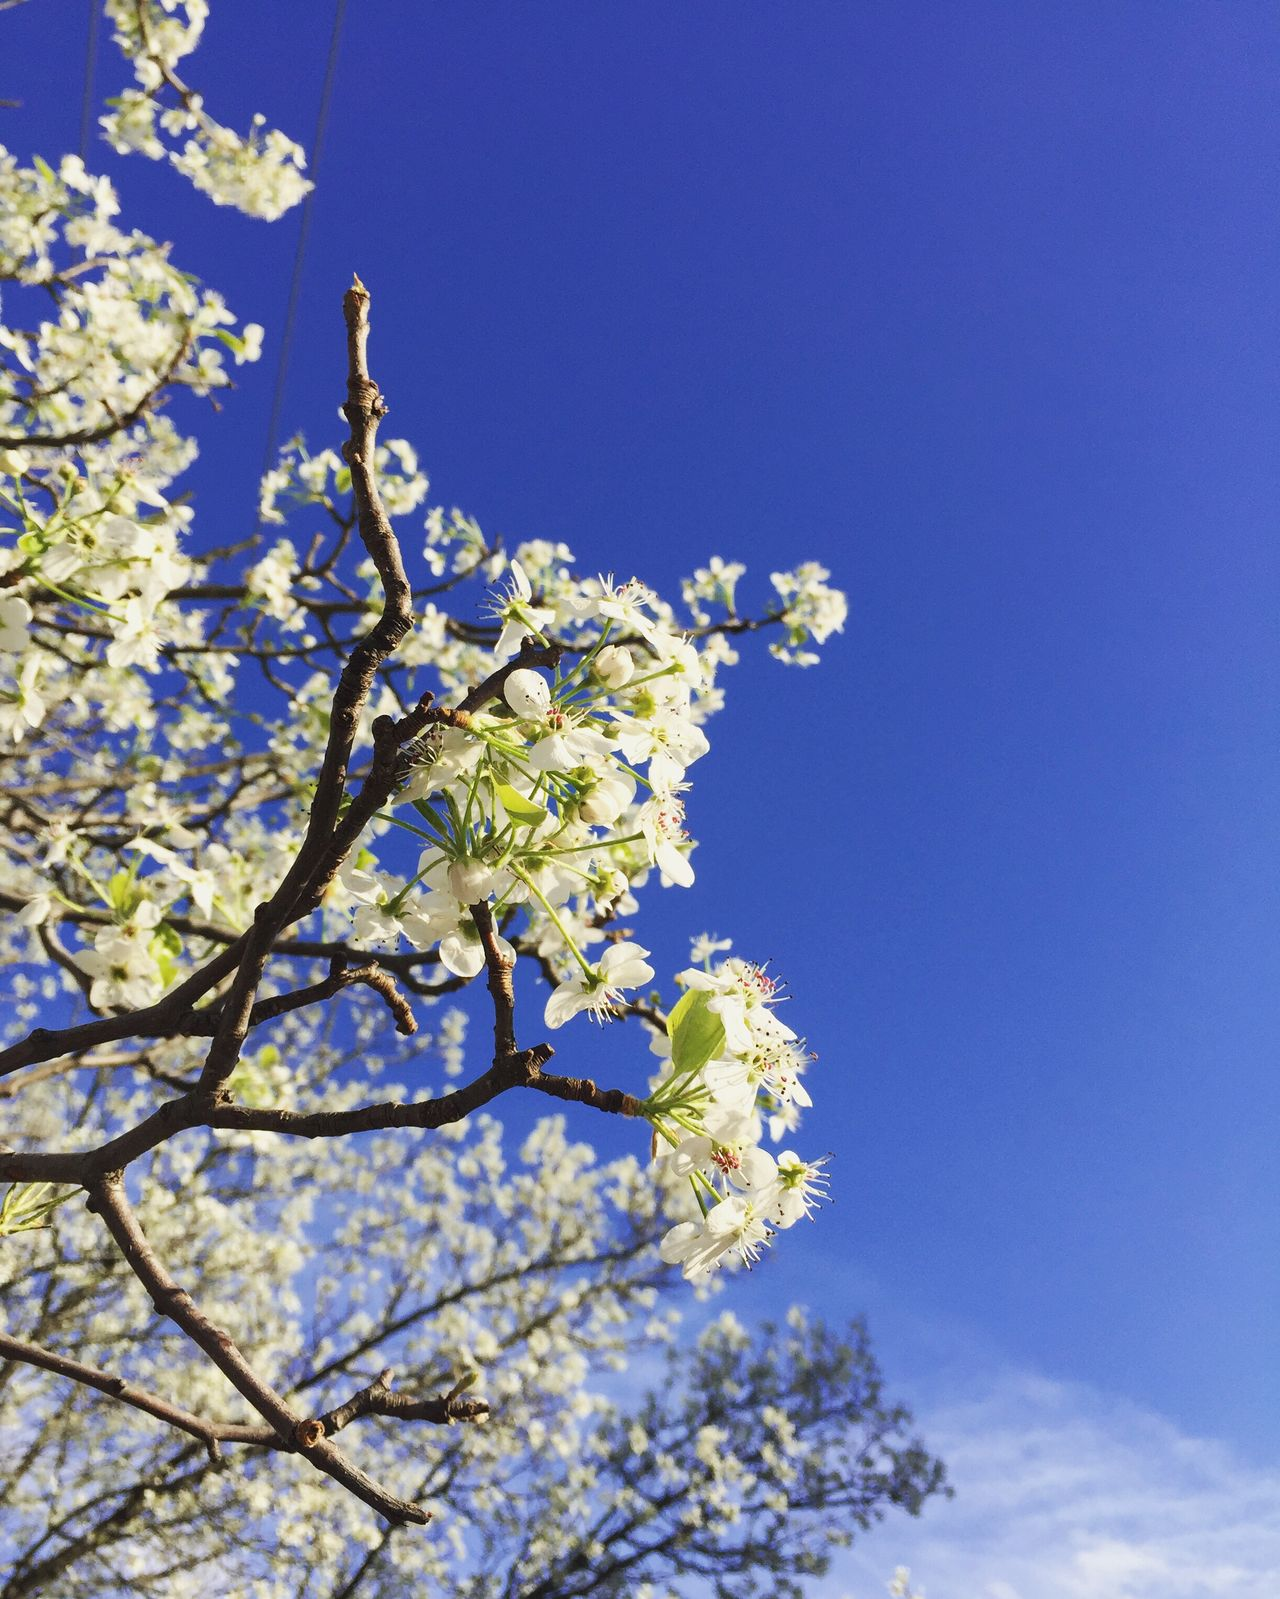 Tree Flower Blue Nature Growth Beauty In Nature Low Angle View Blossom Sky White Color Clear Sky Branch Springtime No People Fruit Tree Fragility Twig Close-up Freshness